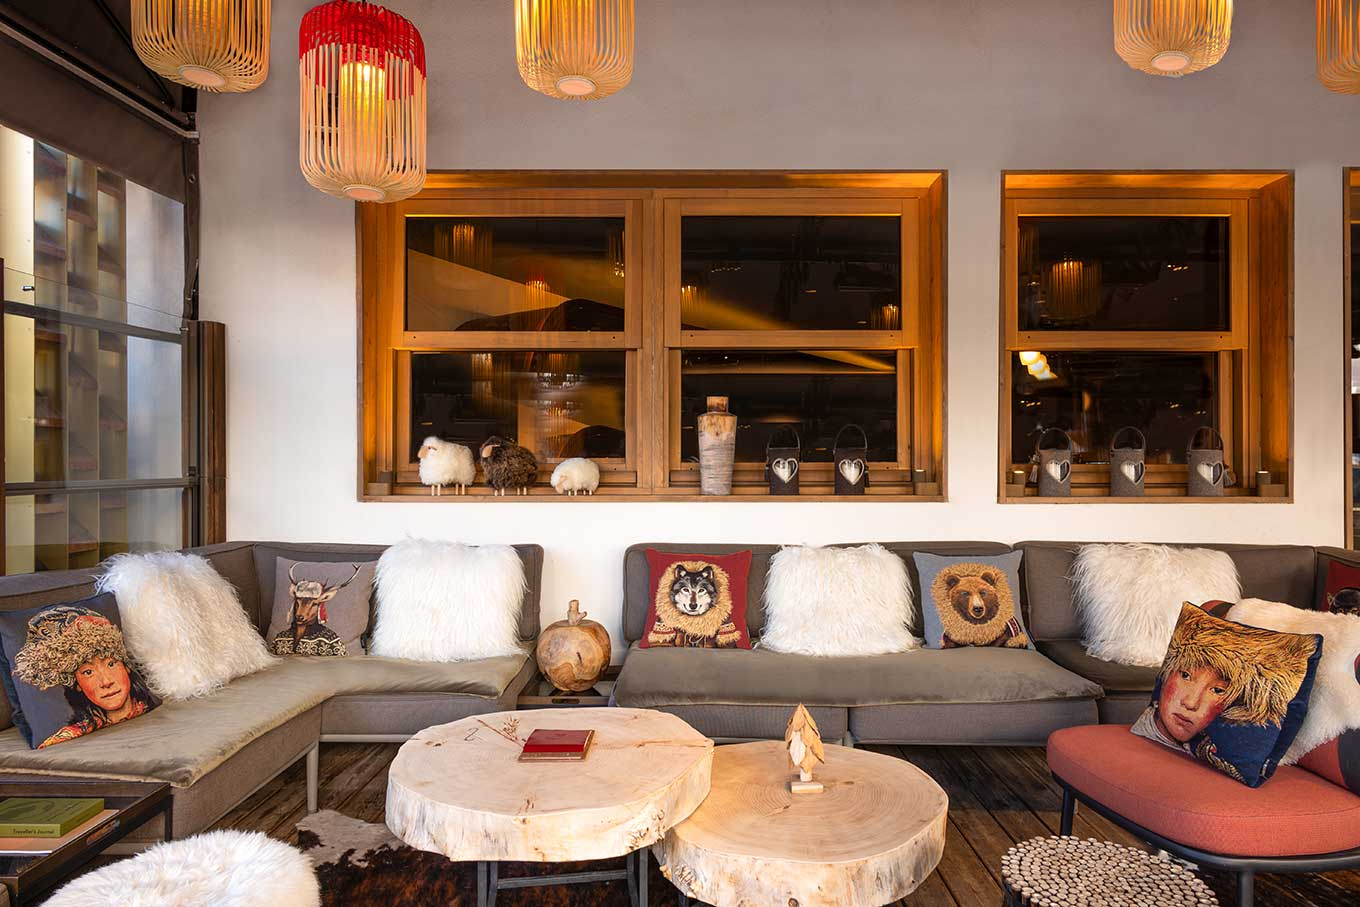 Covered terrace with faux animal skins, cushions, wooden coffee tables and braziers